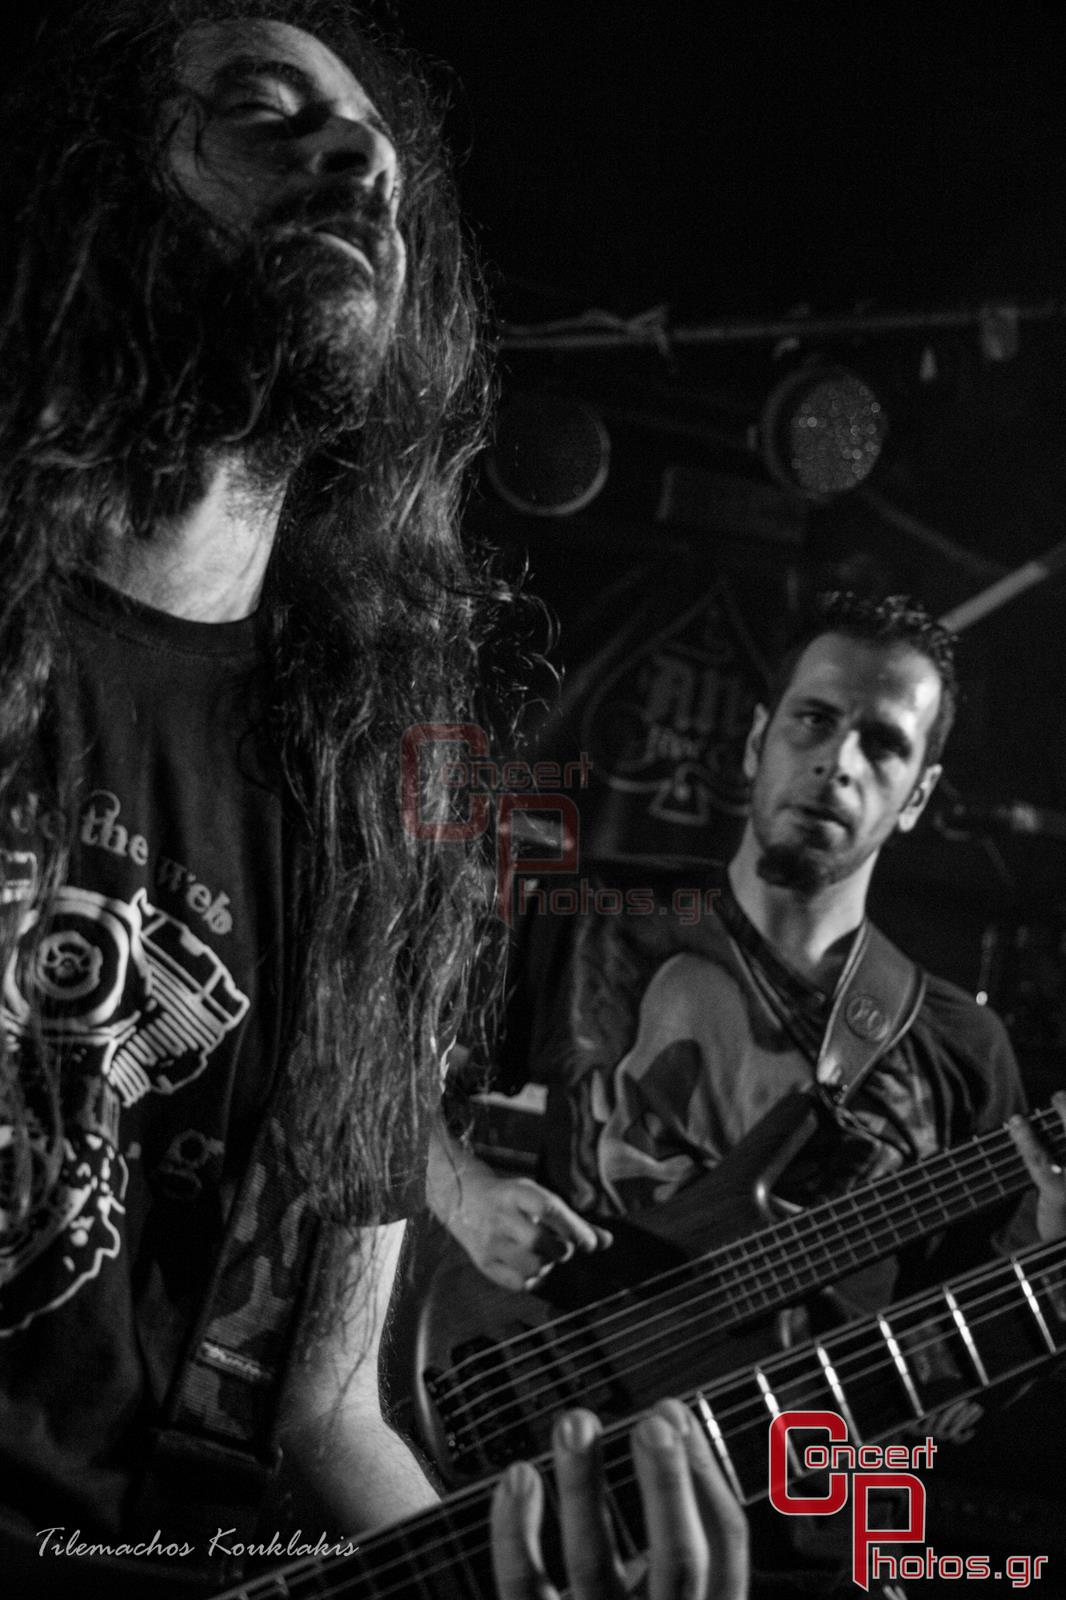 Nightstalker-Nightstalker AN Club photographer:  - concertphotos_-8